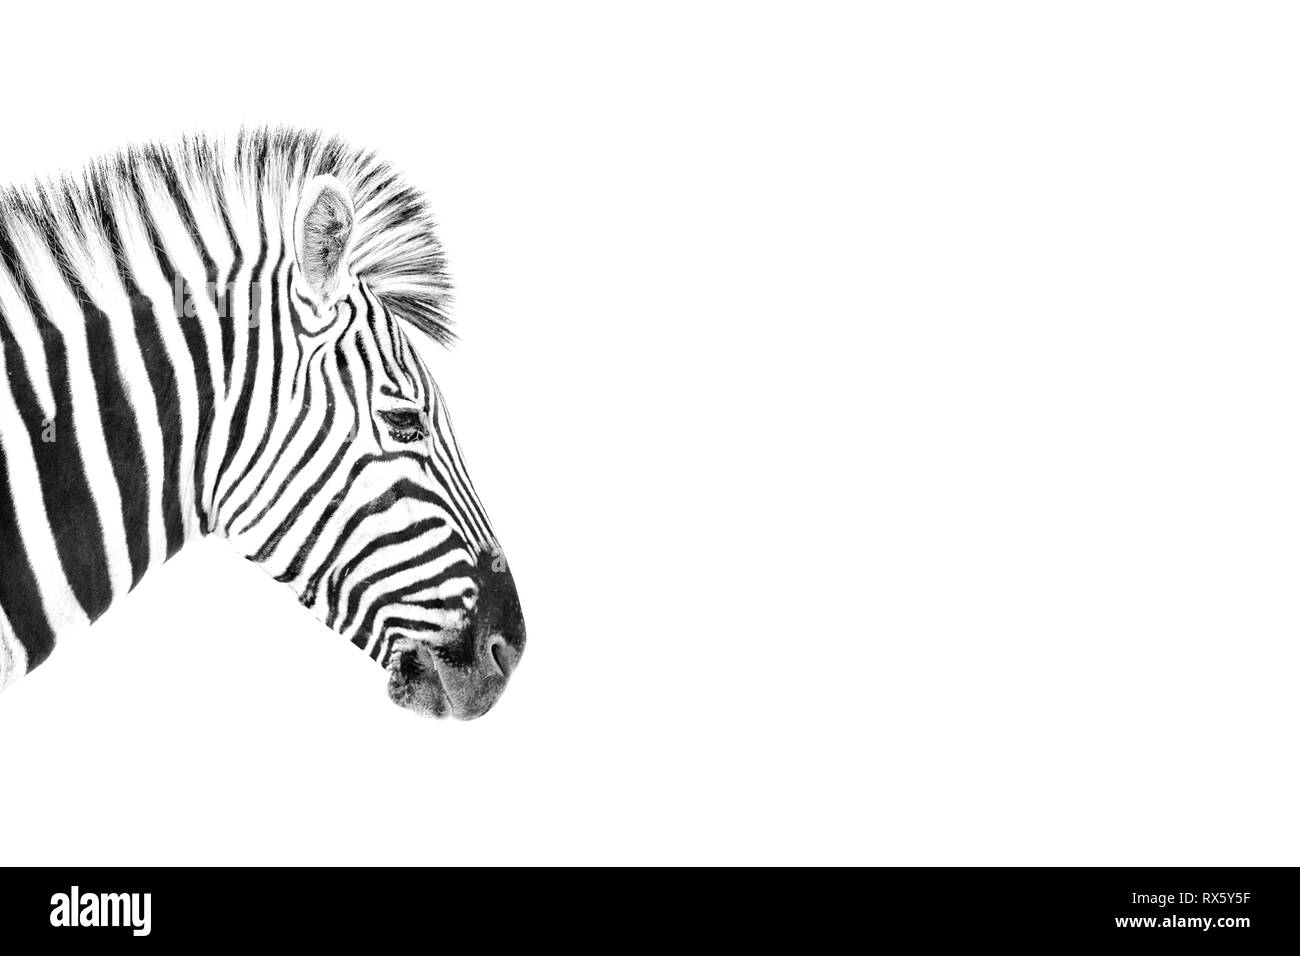 A High Key image of a Zebra - Stock Image